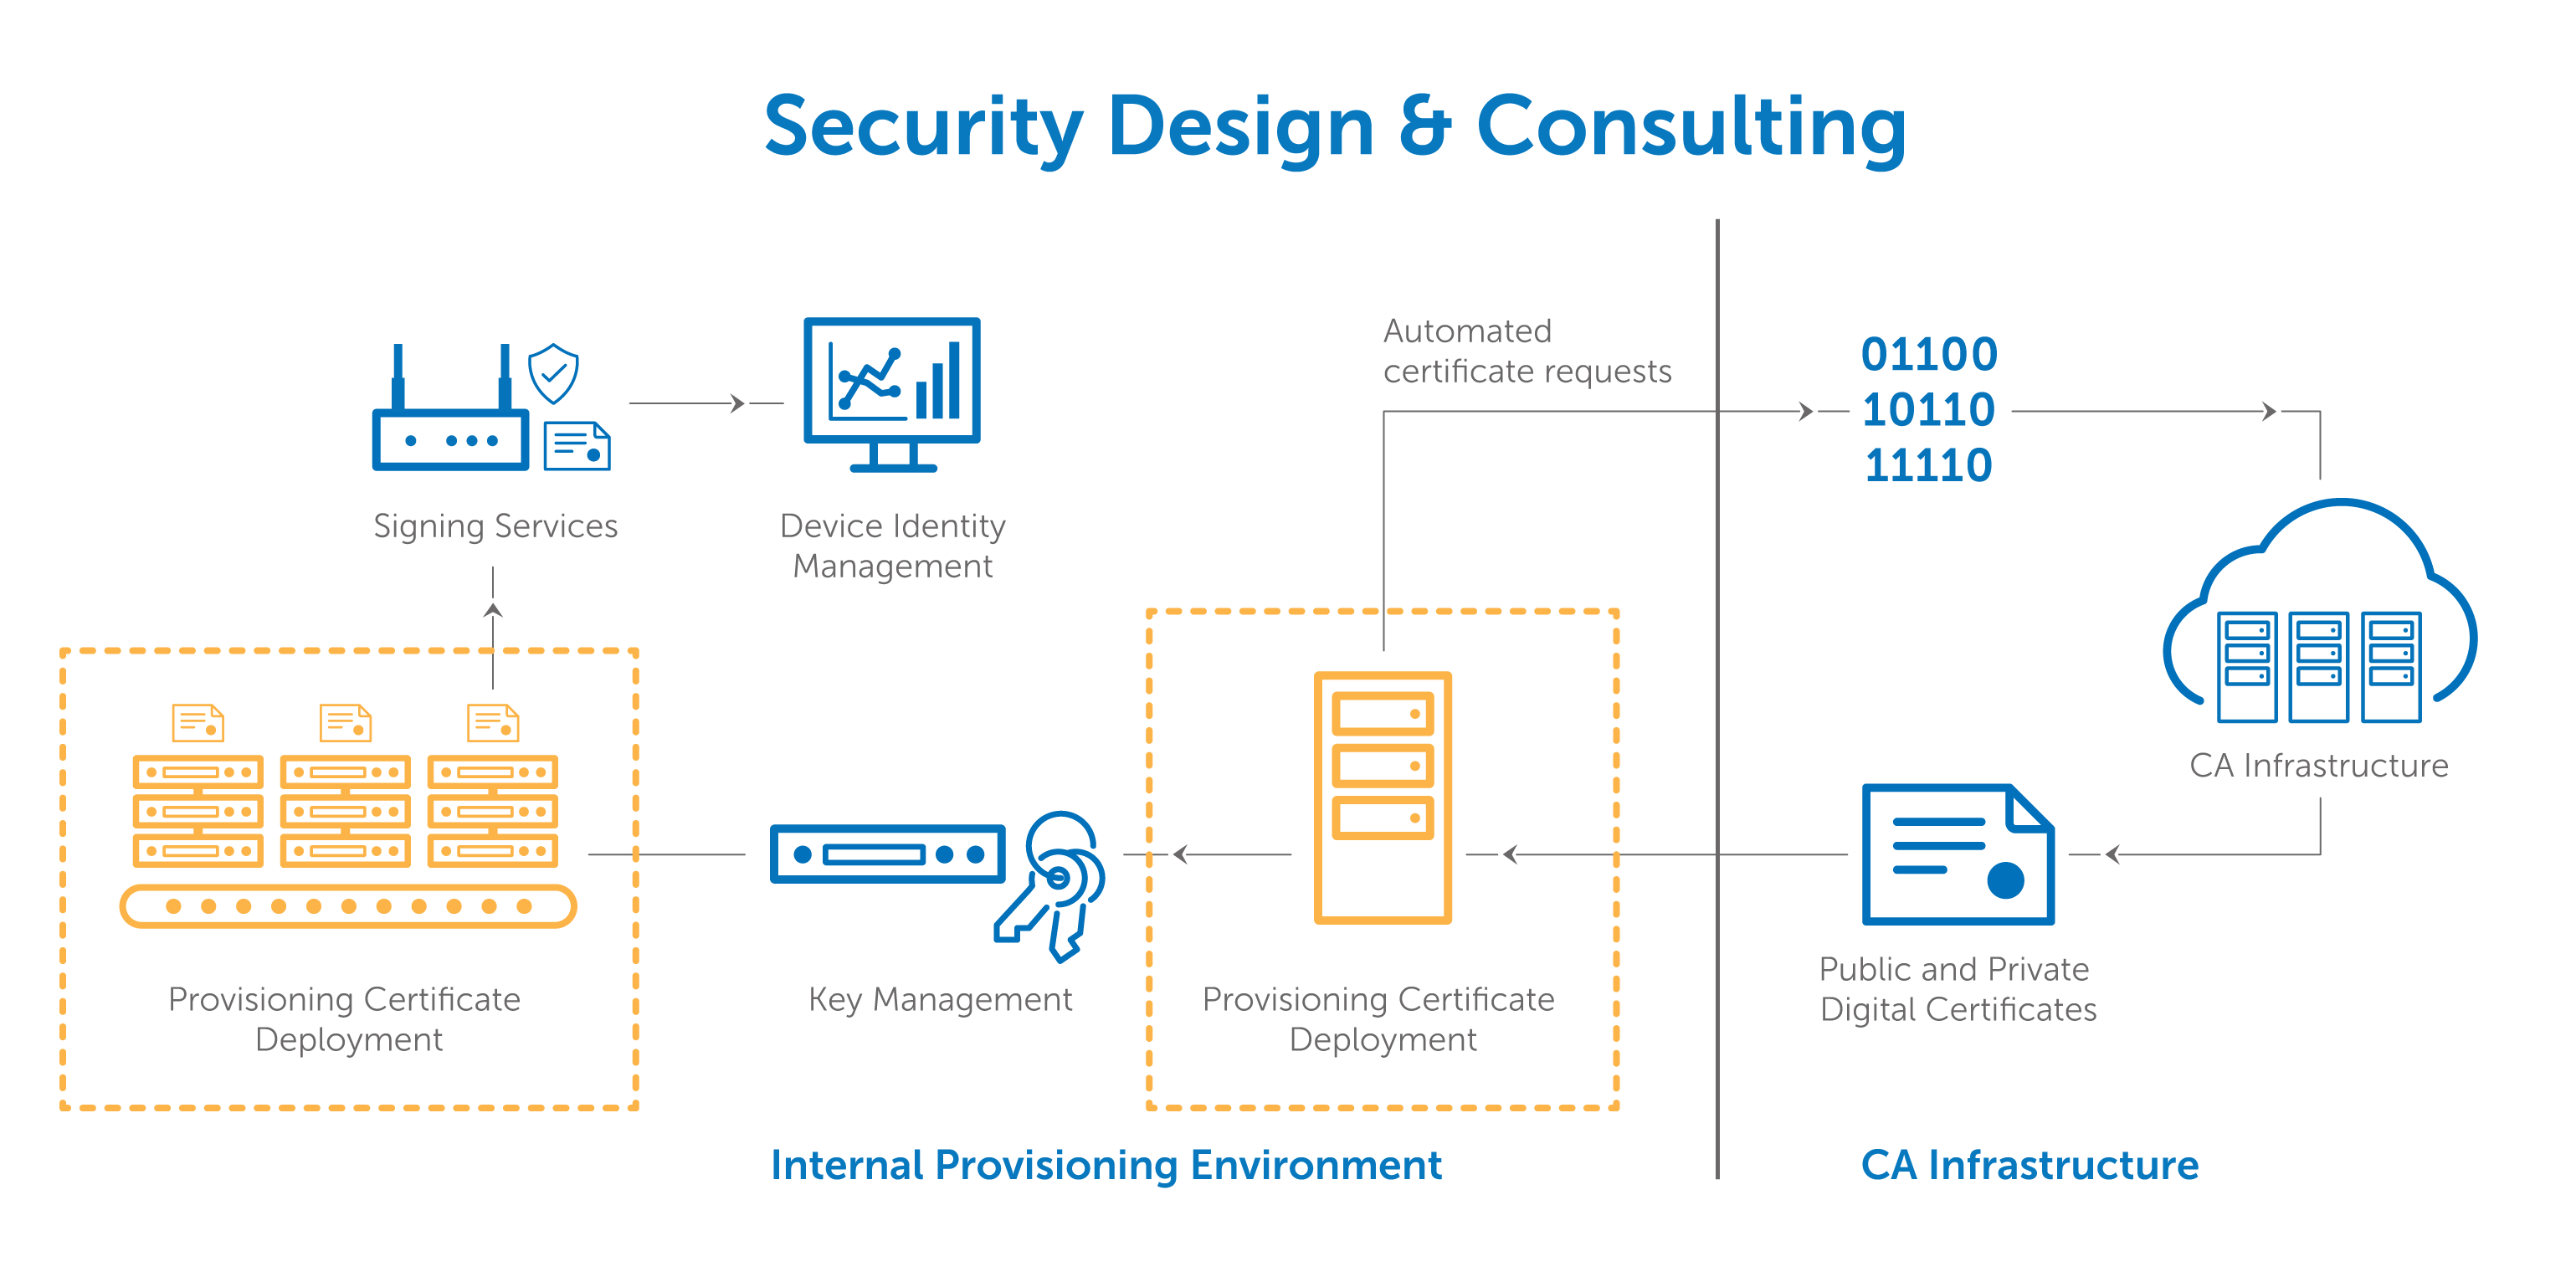 Iot provisioning deployment digicert additional provisioning and deployment features xflitez Image collections